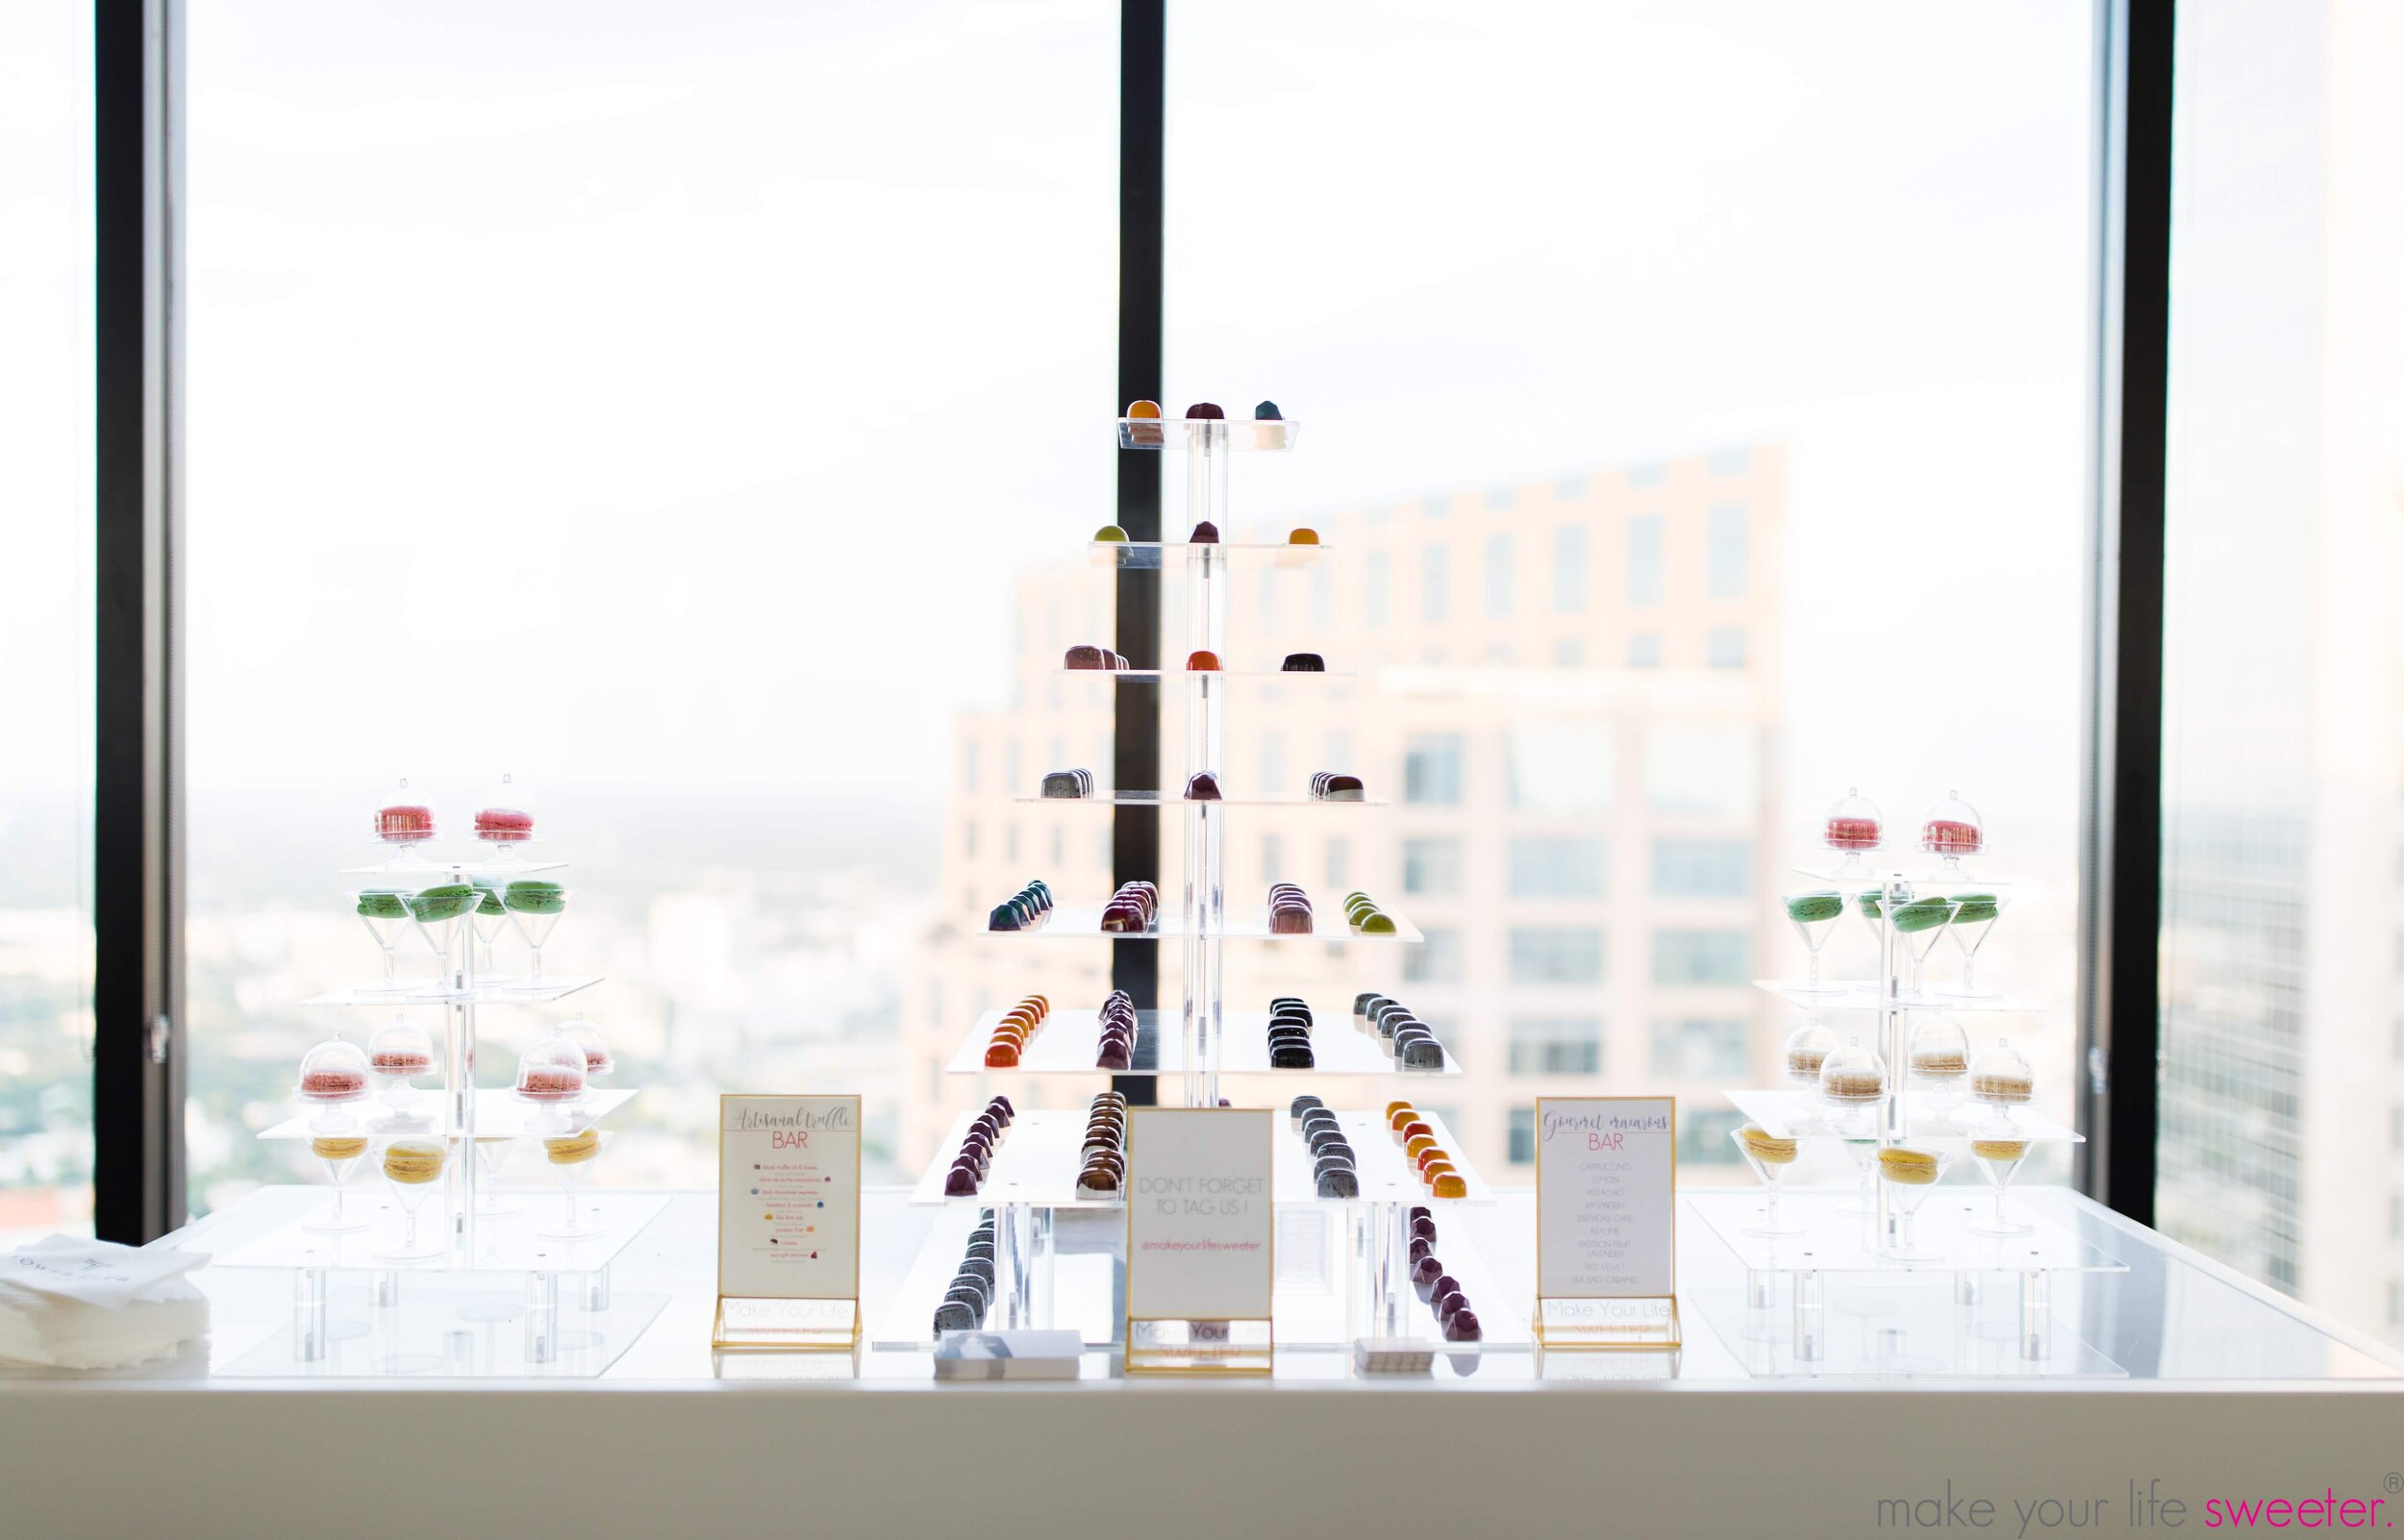 Make Your Life Sweeter Events - Tower Club Grand Opening: Artisanal Truffle Bar